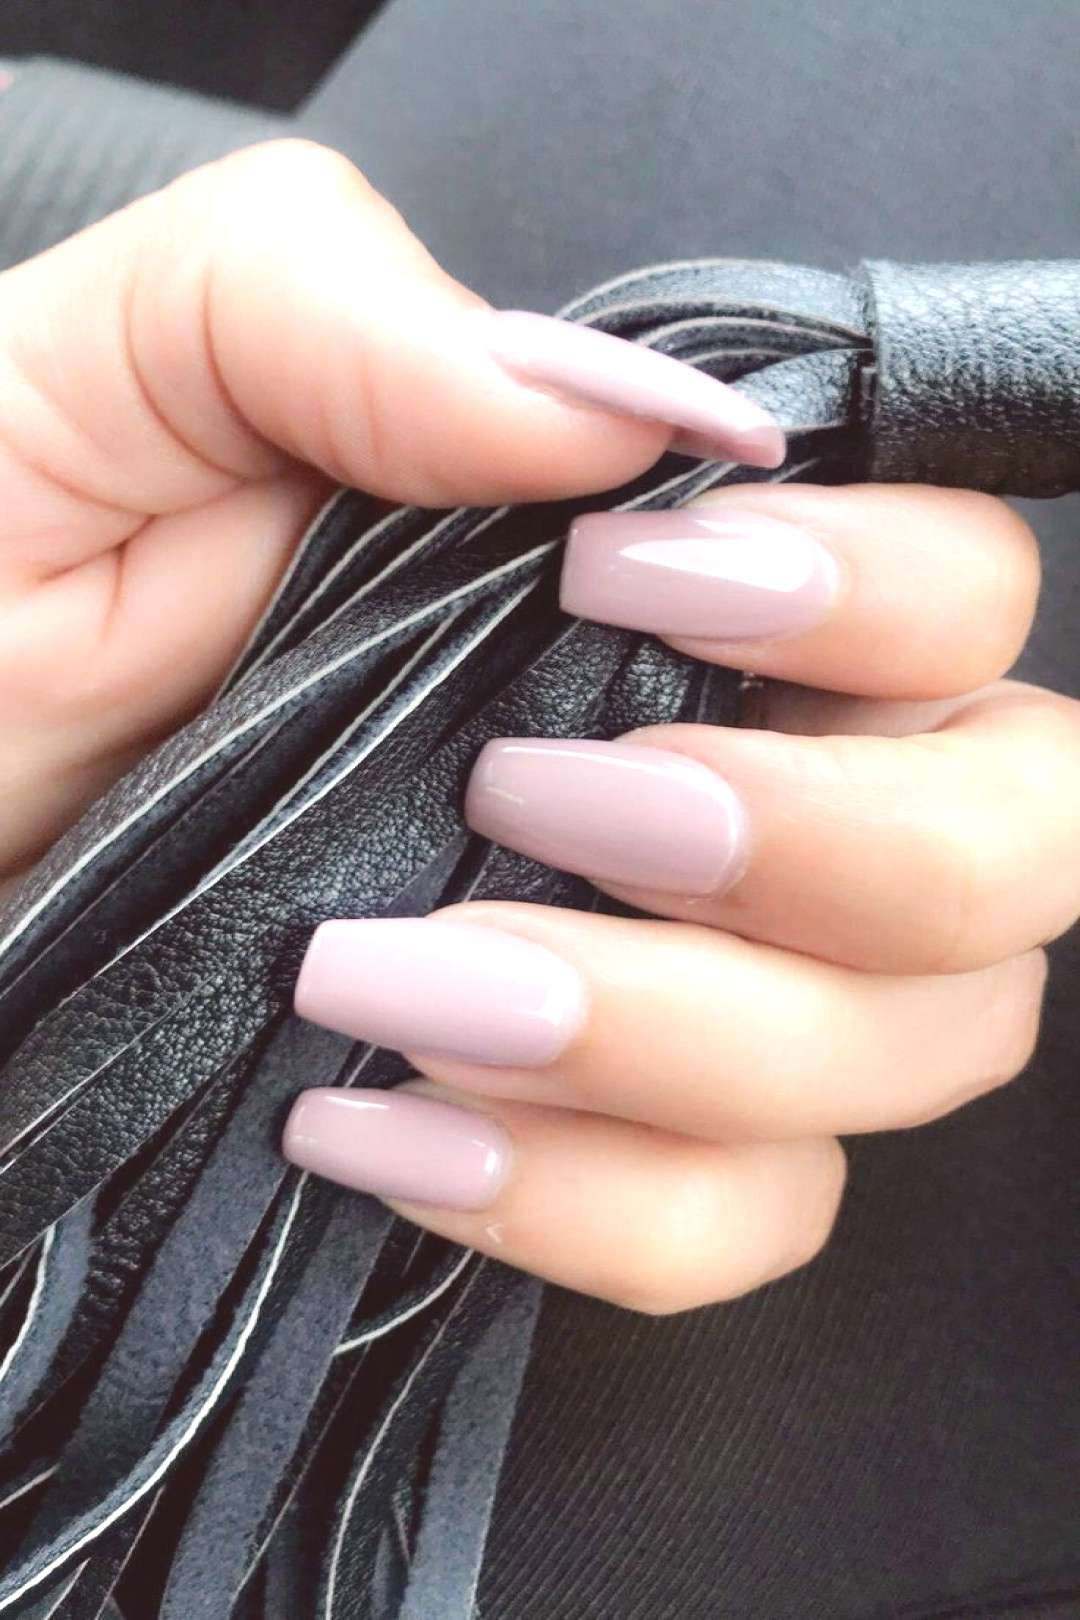 Ongles dt gel acrylic beautifulacrylicnails  Acrylic beautifulacrylicna